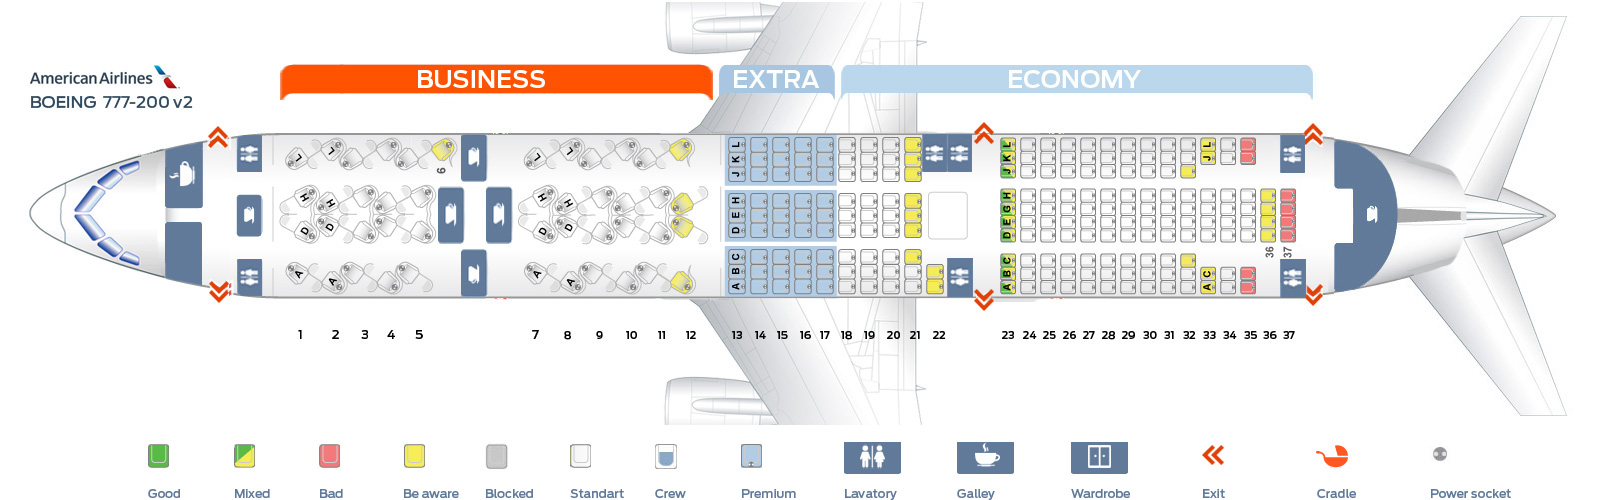 Seat_map_American_Airlines_Boeing_777-200_v2